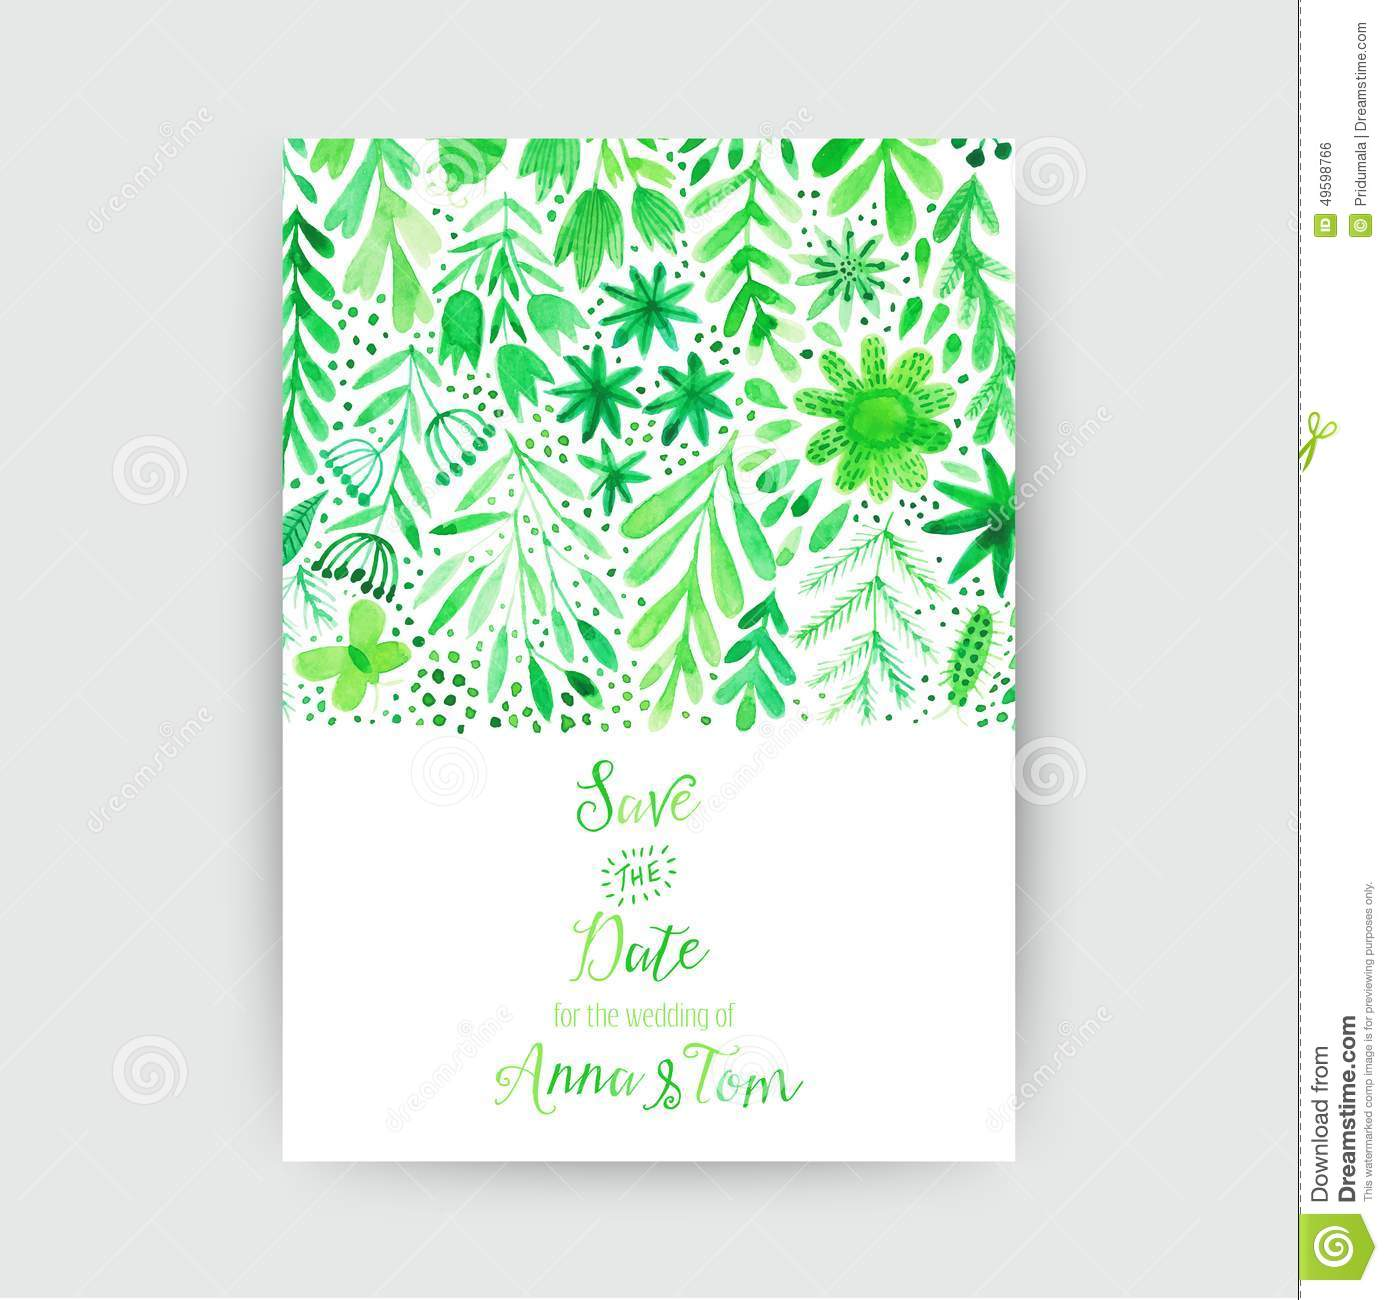 Vector watercolor invitation card with flowers and plants floral download comp m4hsunfo